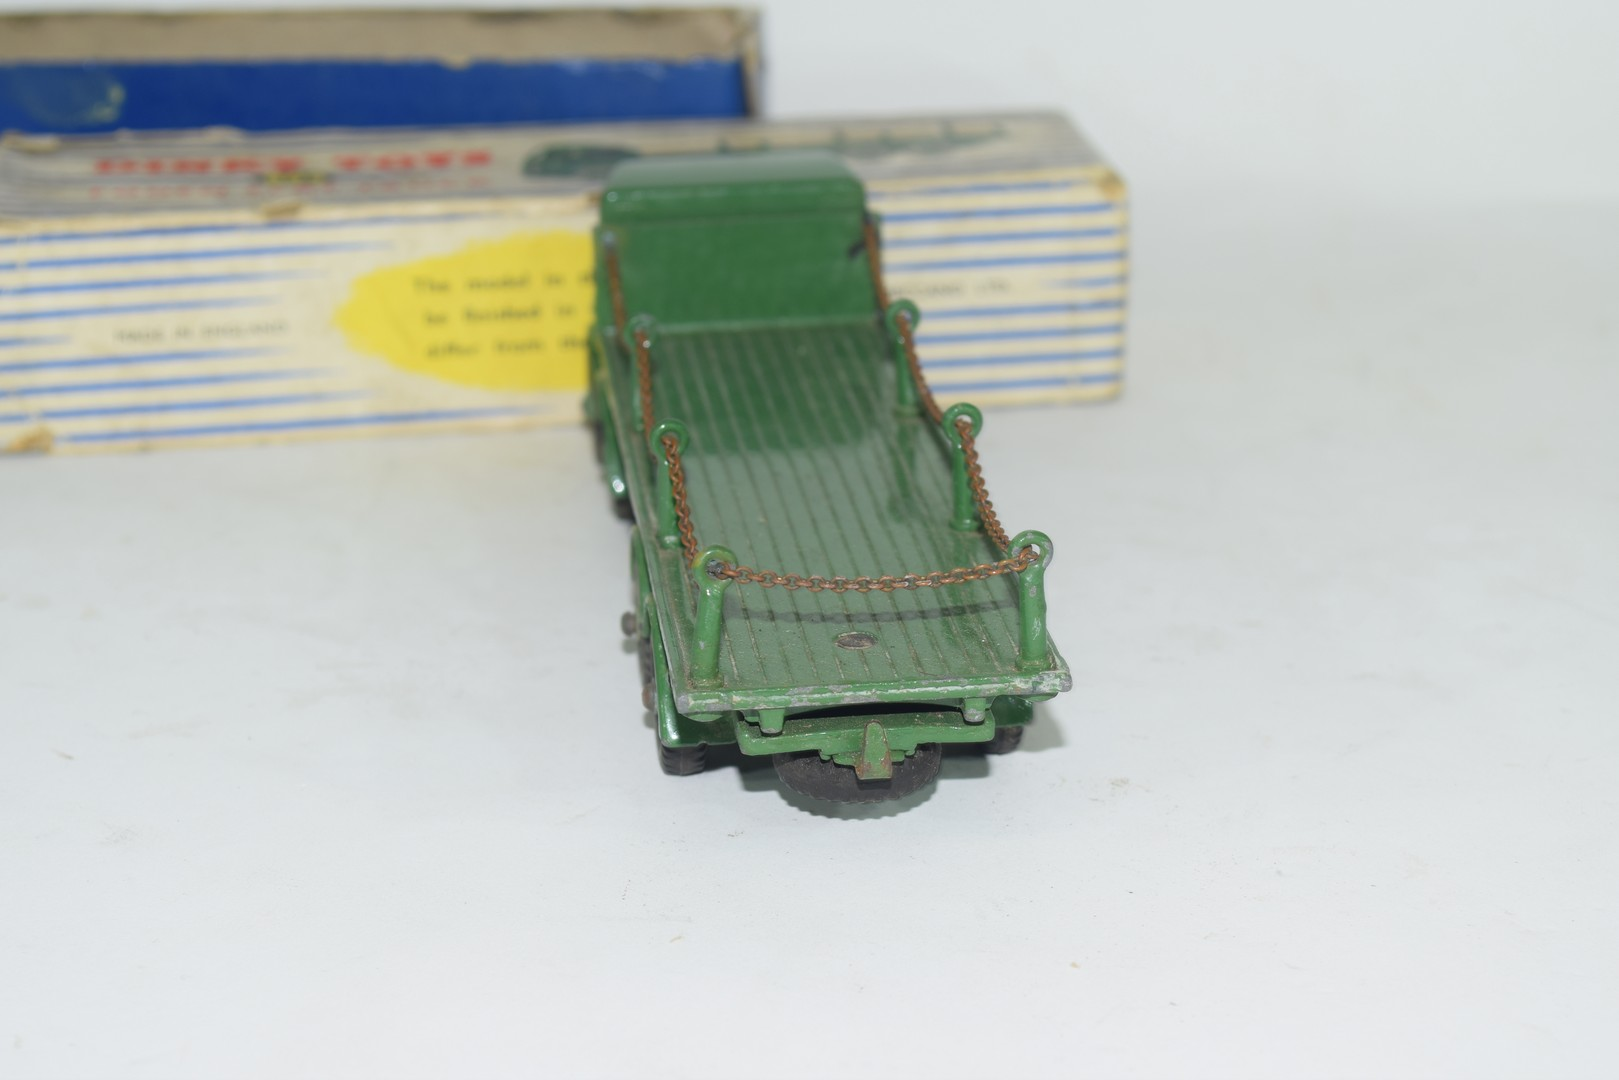 Dinky Supertoys Foden flat truck with chains, No 905 - Image 5 of 5